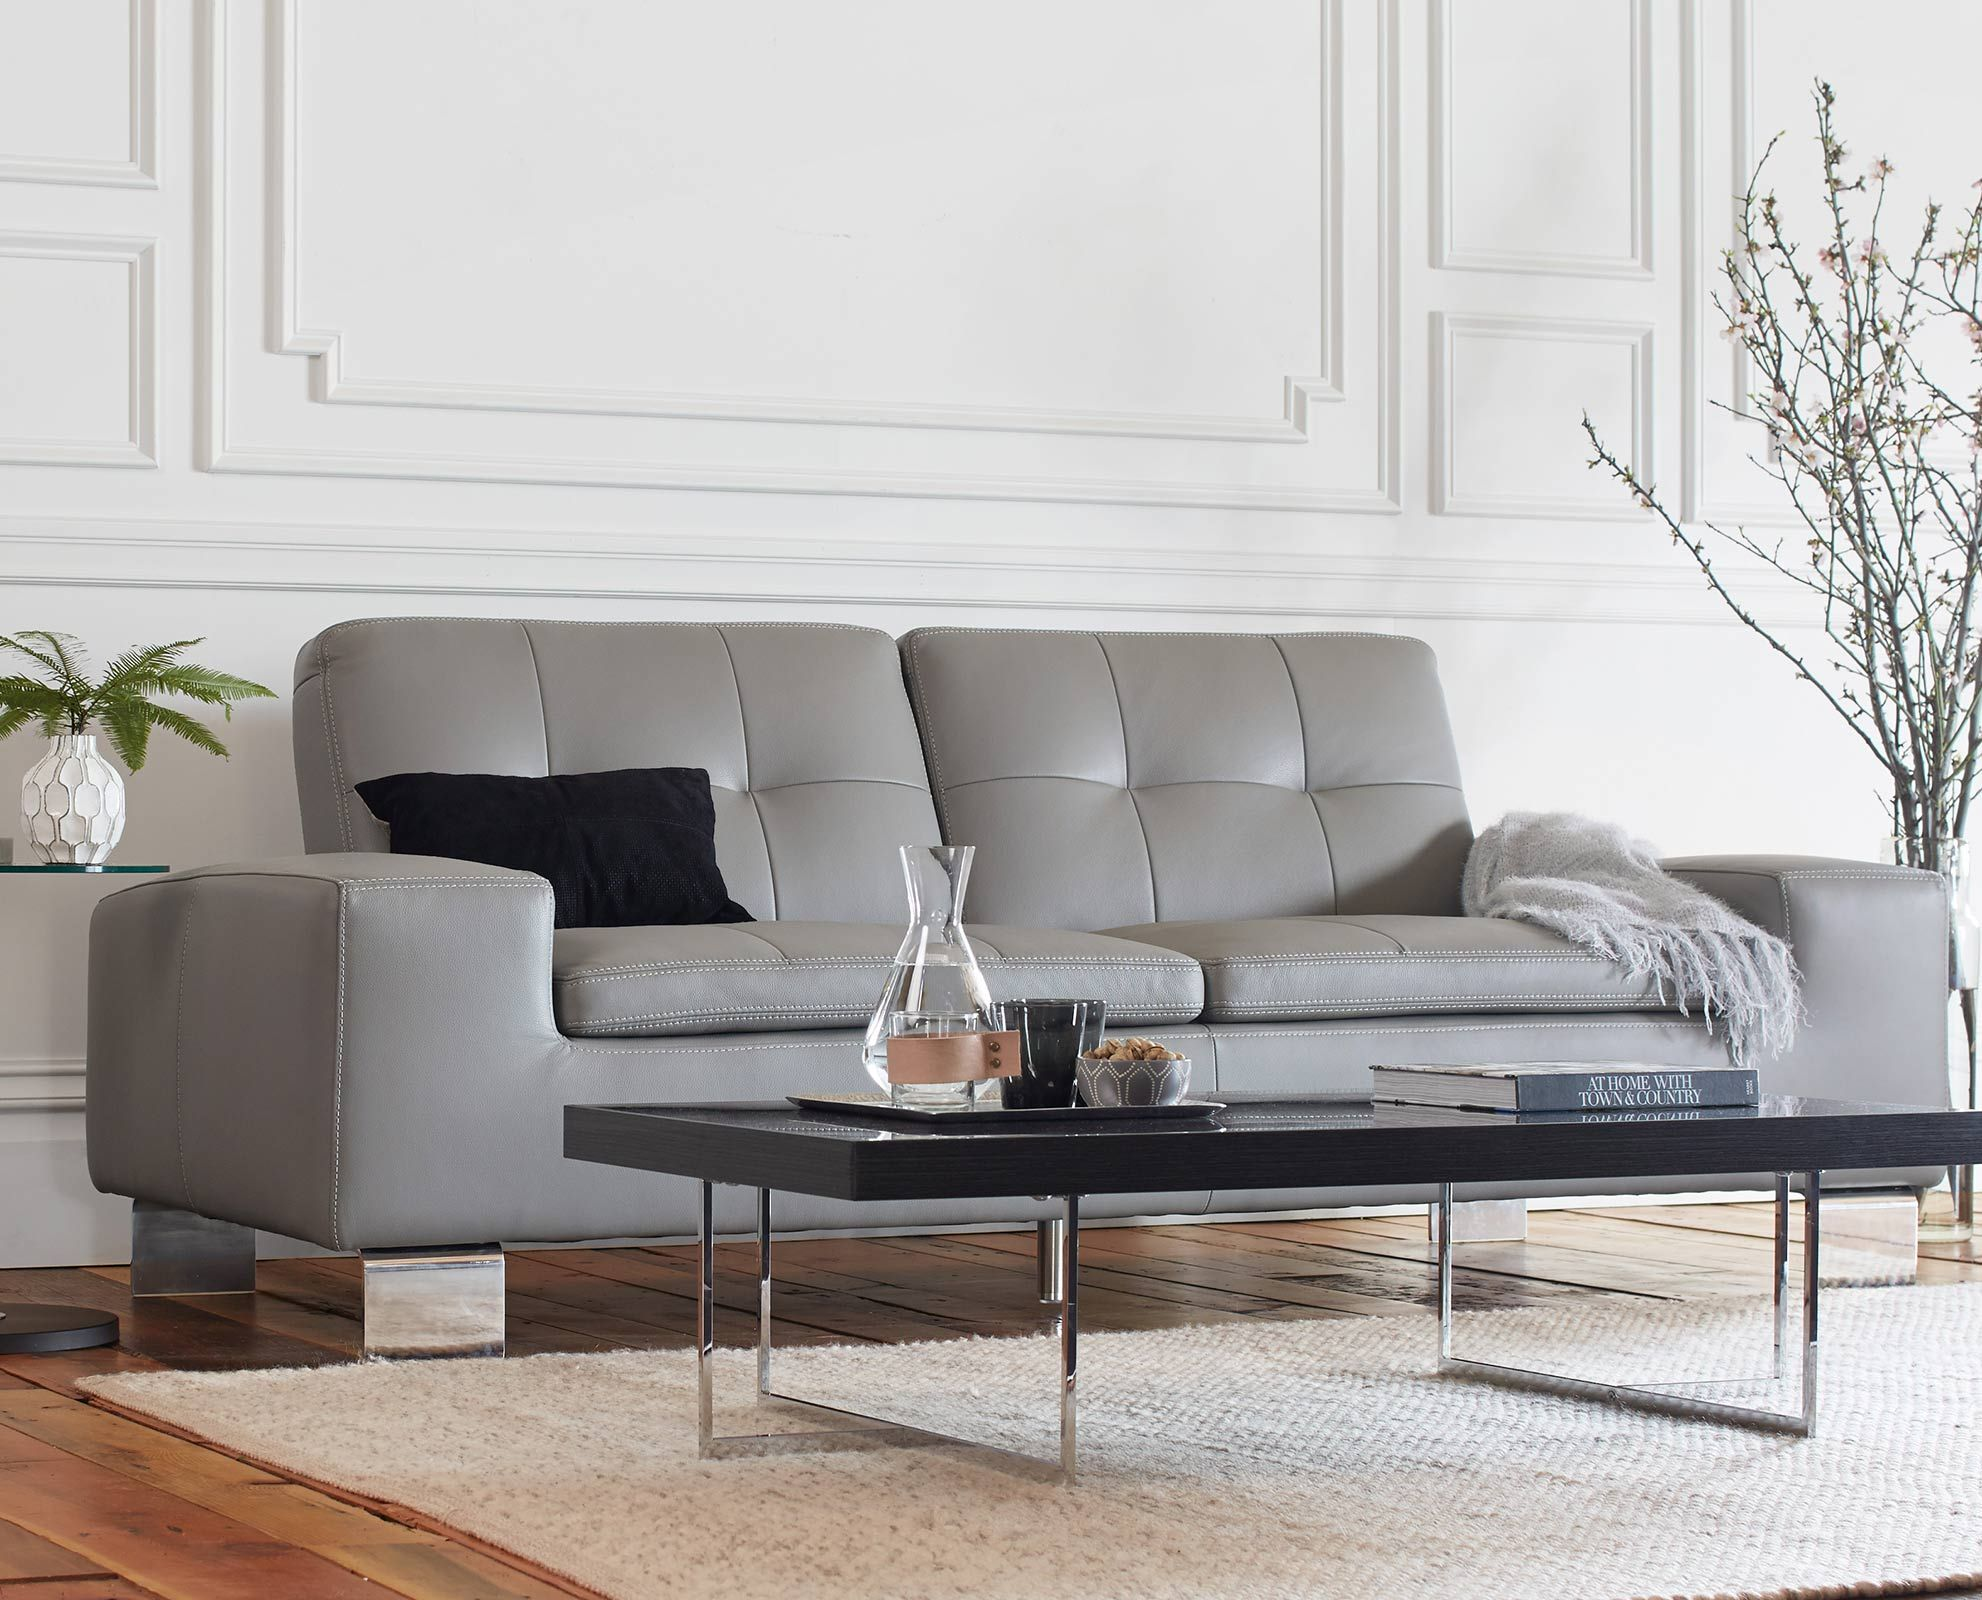 The Francesca leather sofa and Mondiana coffee table from